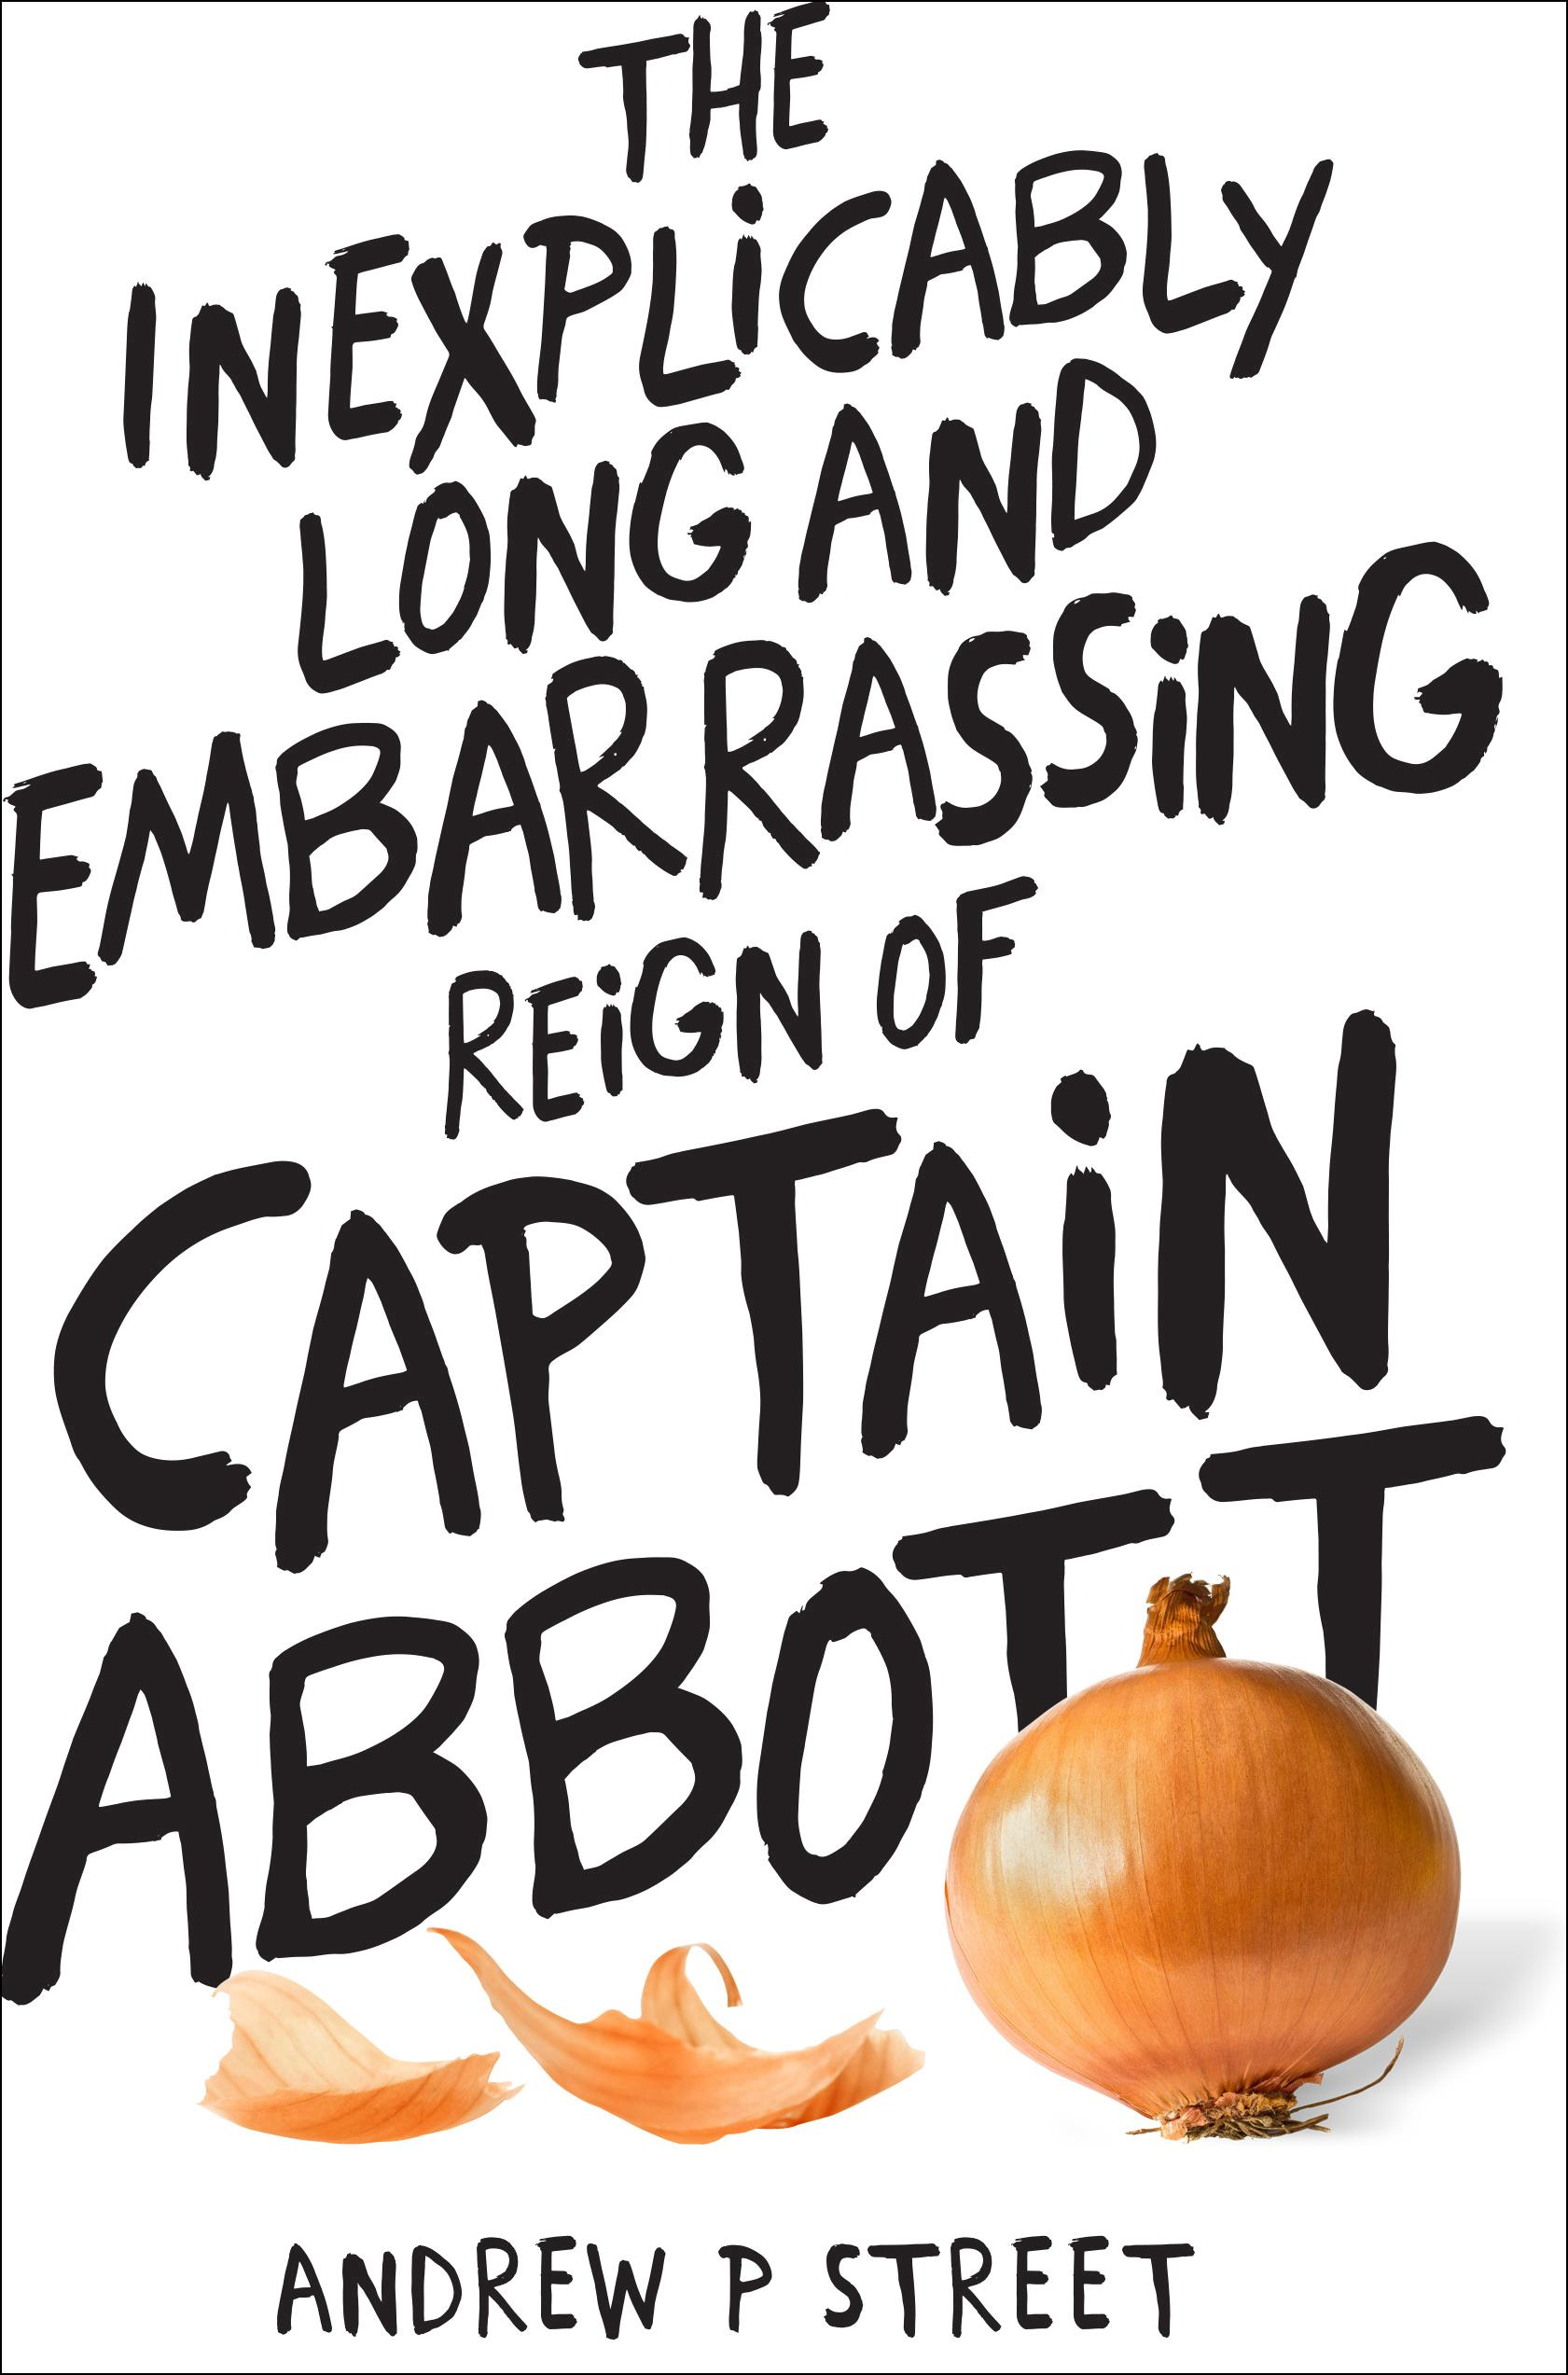 The Short and Excruciatingly Embarrassing Reign ofCaptainAbbott